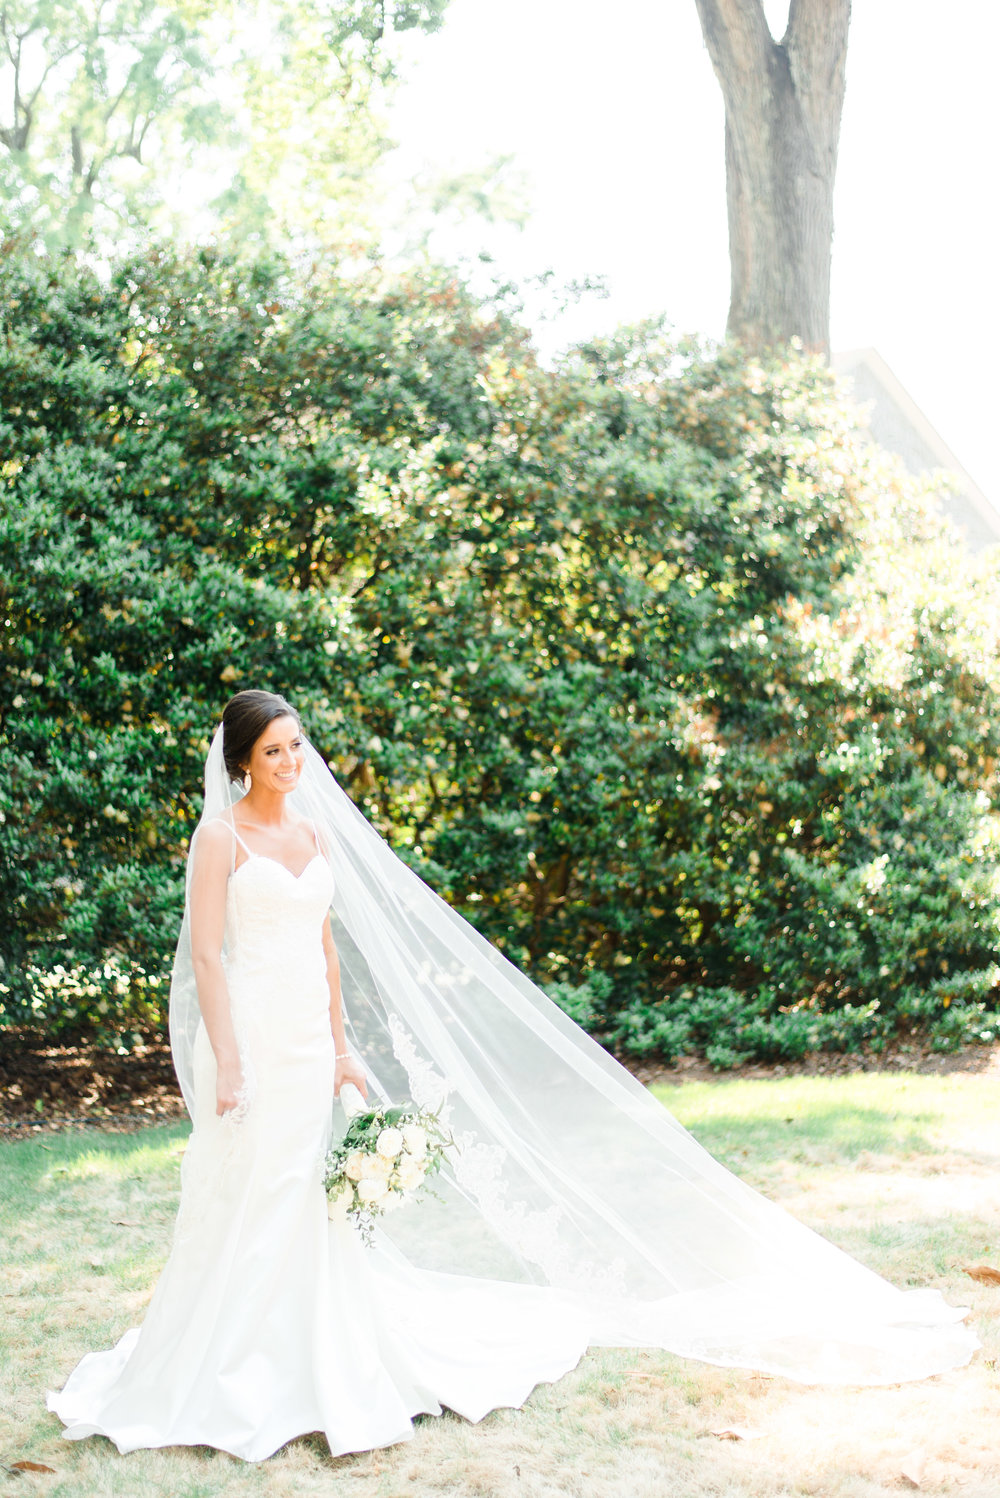 Bride Megan on her wedding day in the Midlands of South Carolina.